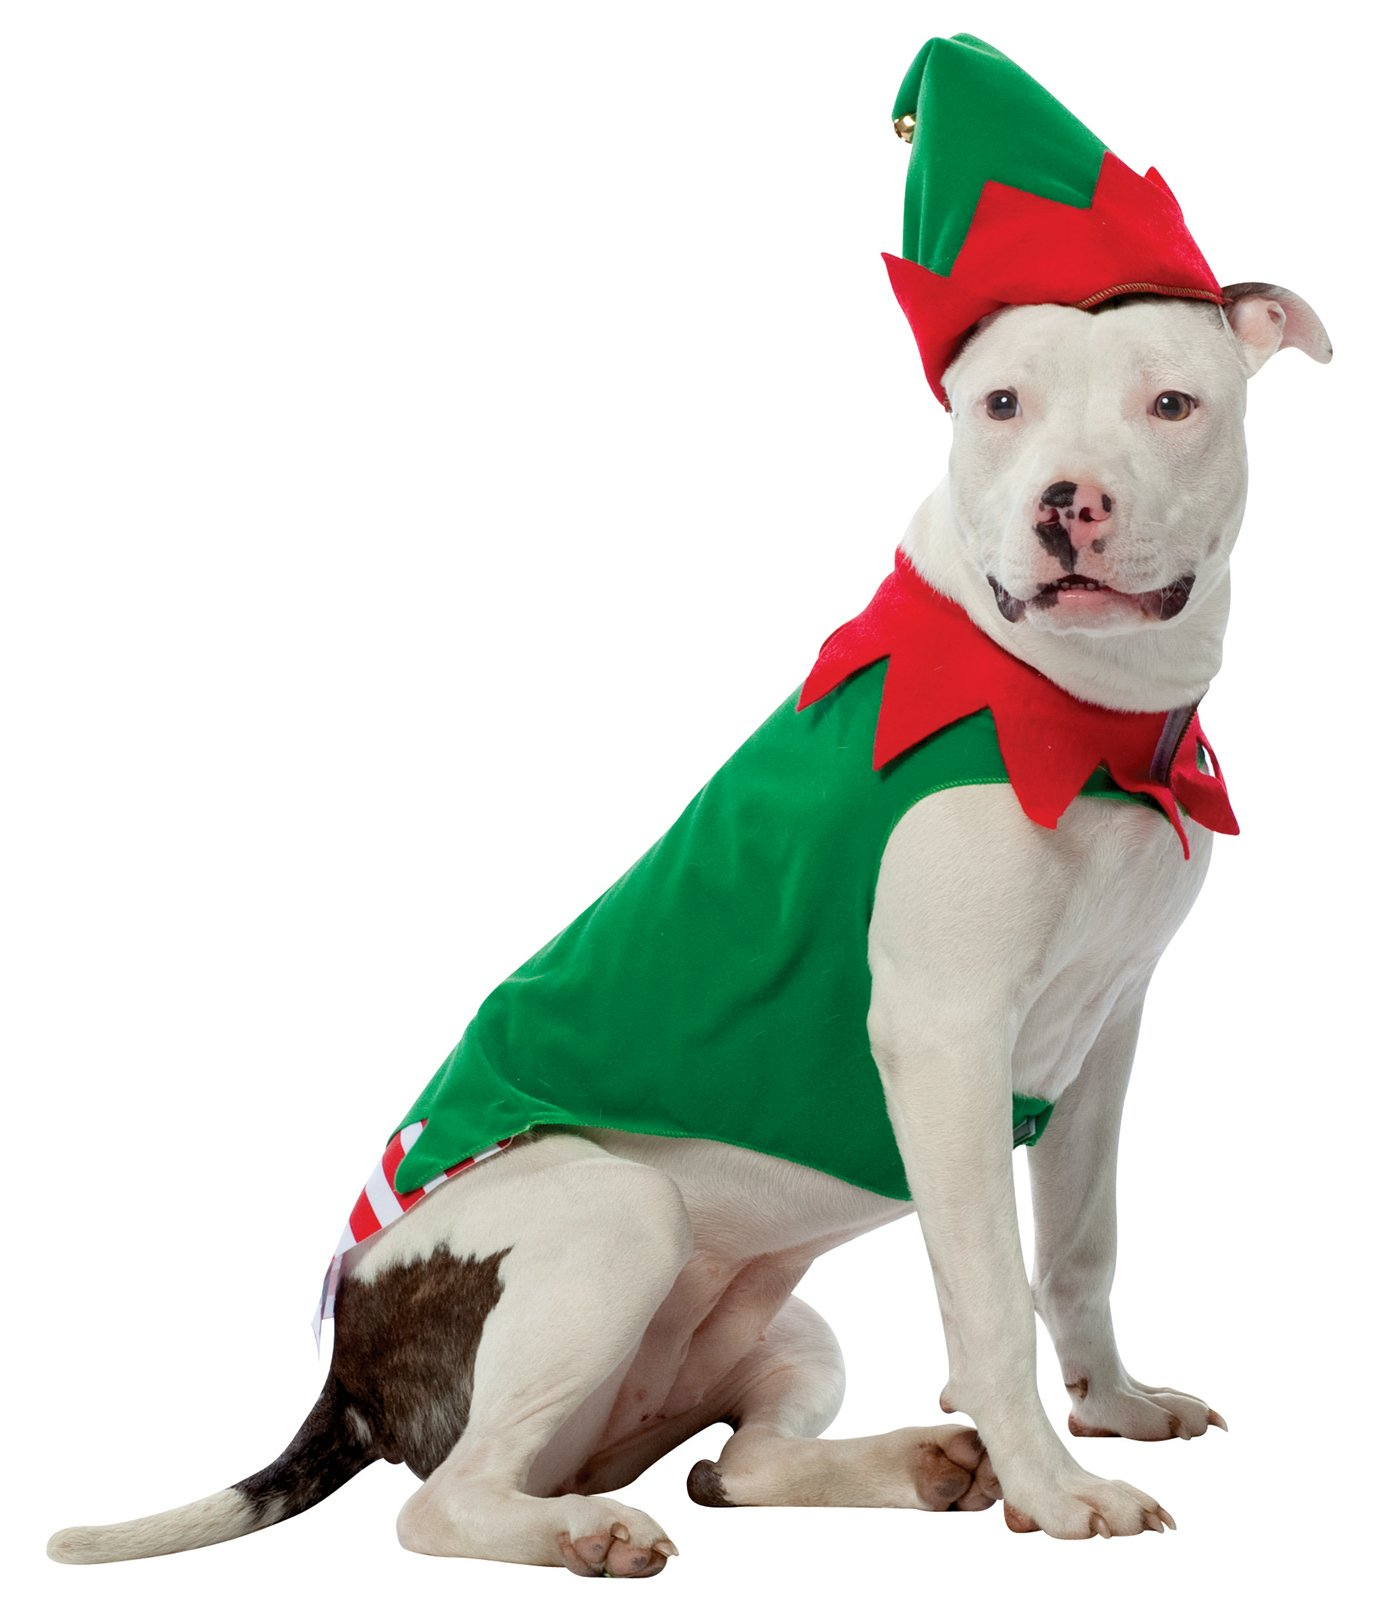 Christmas Pitbull Wallpaper